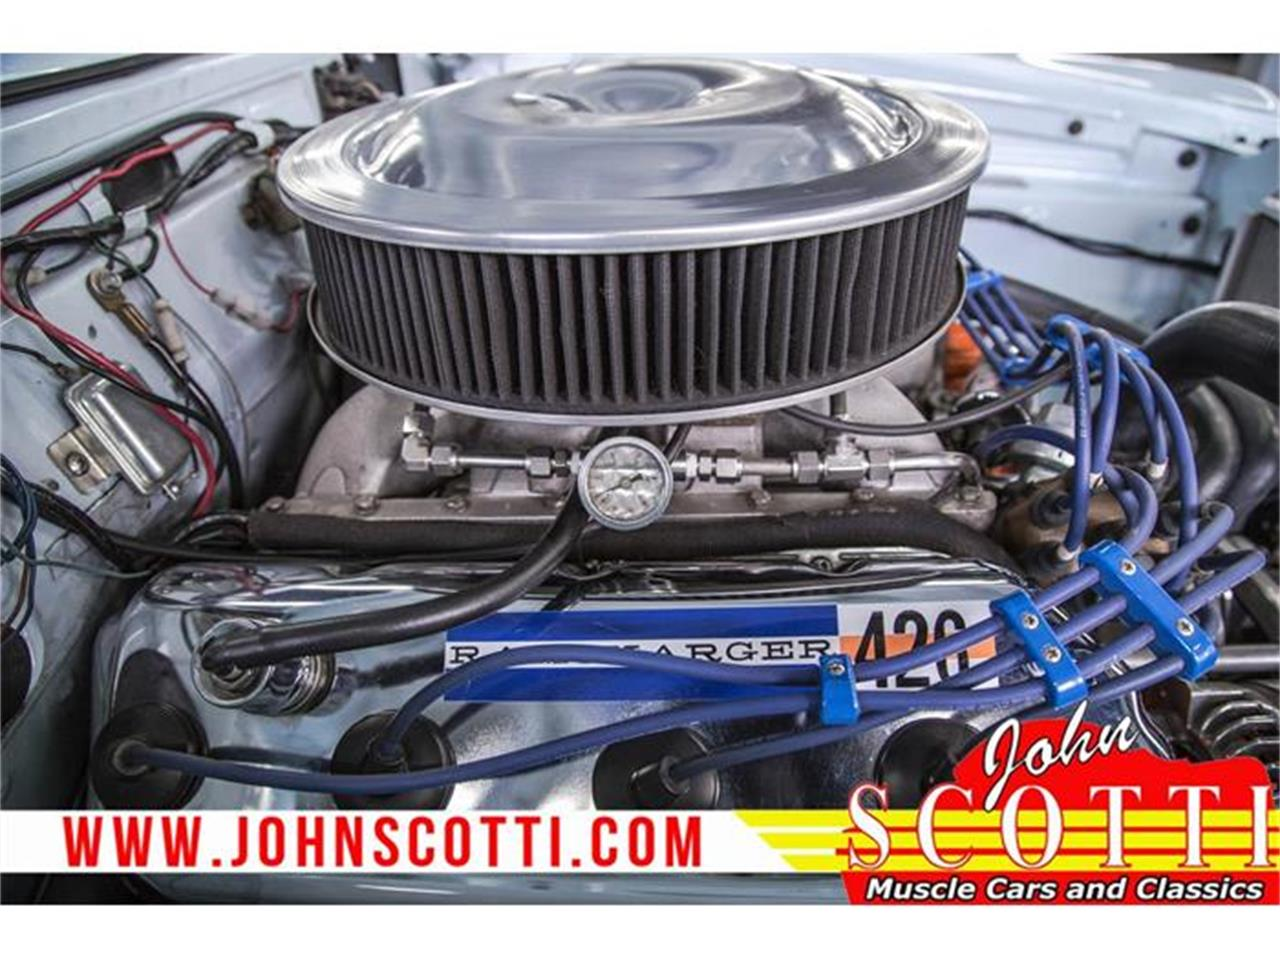 Large Picture of '63 Polara located in Quebec - $54,500.00 Offered by John Scotti Classic Cars - GA0M